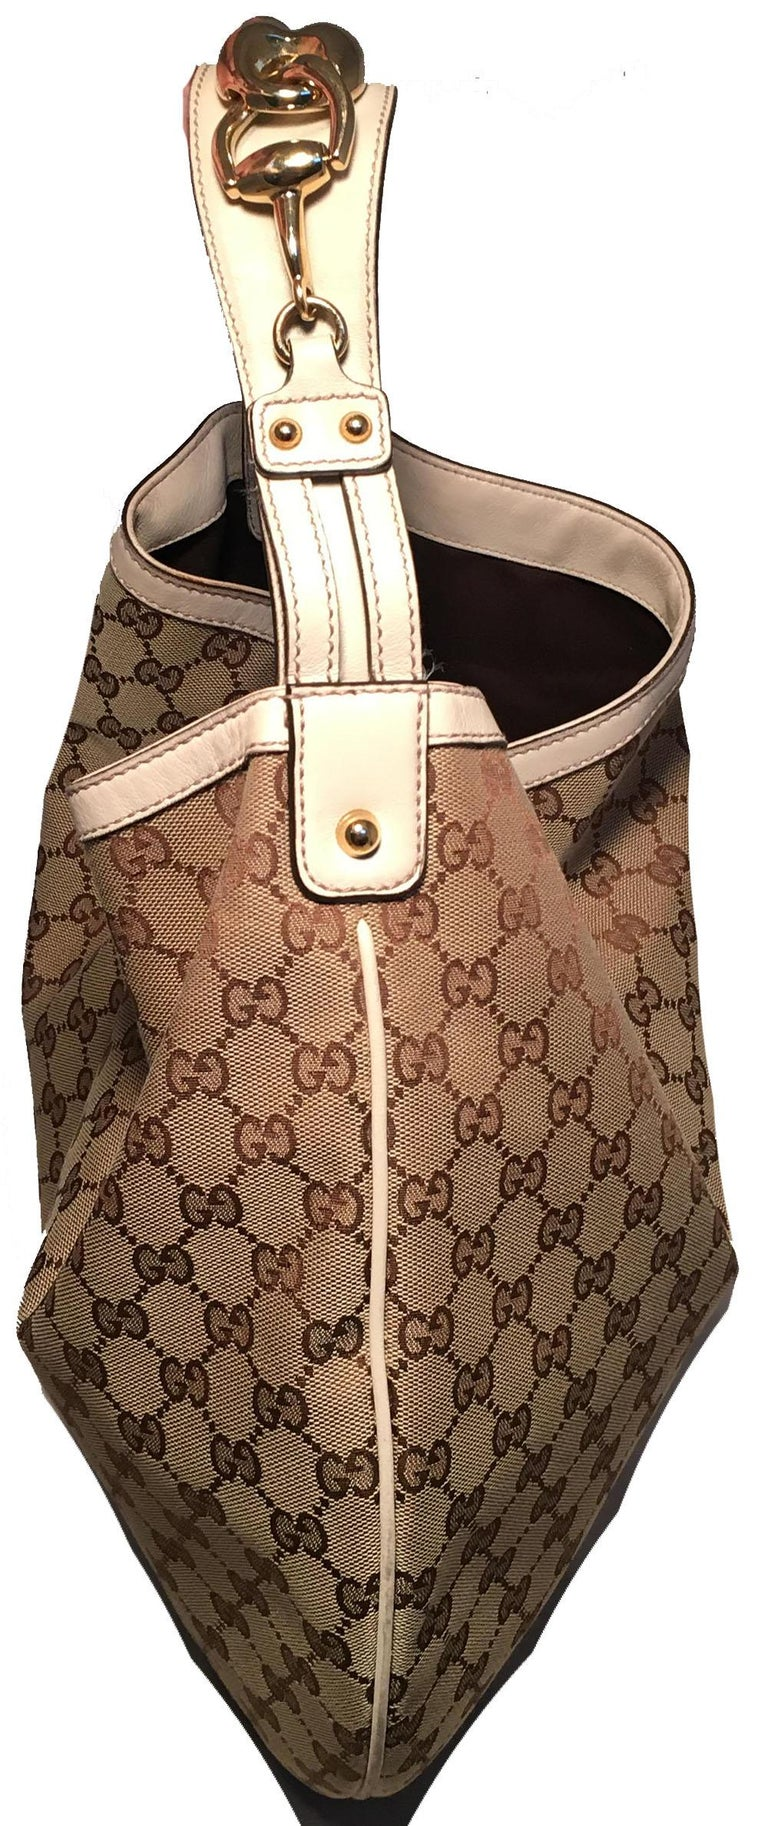 7376a6c5829909 CLASSIC Gucci GG Monogram Canvas and Beige Leather Hobo Shoulder Bag in  excellent condition. Monogram